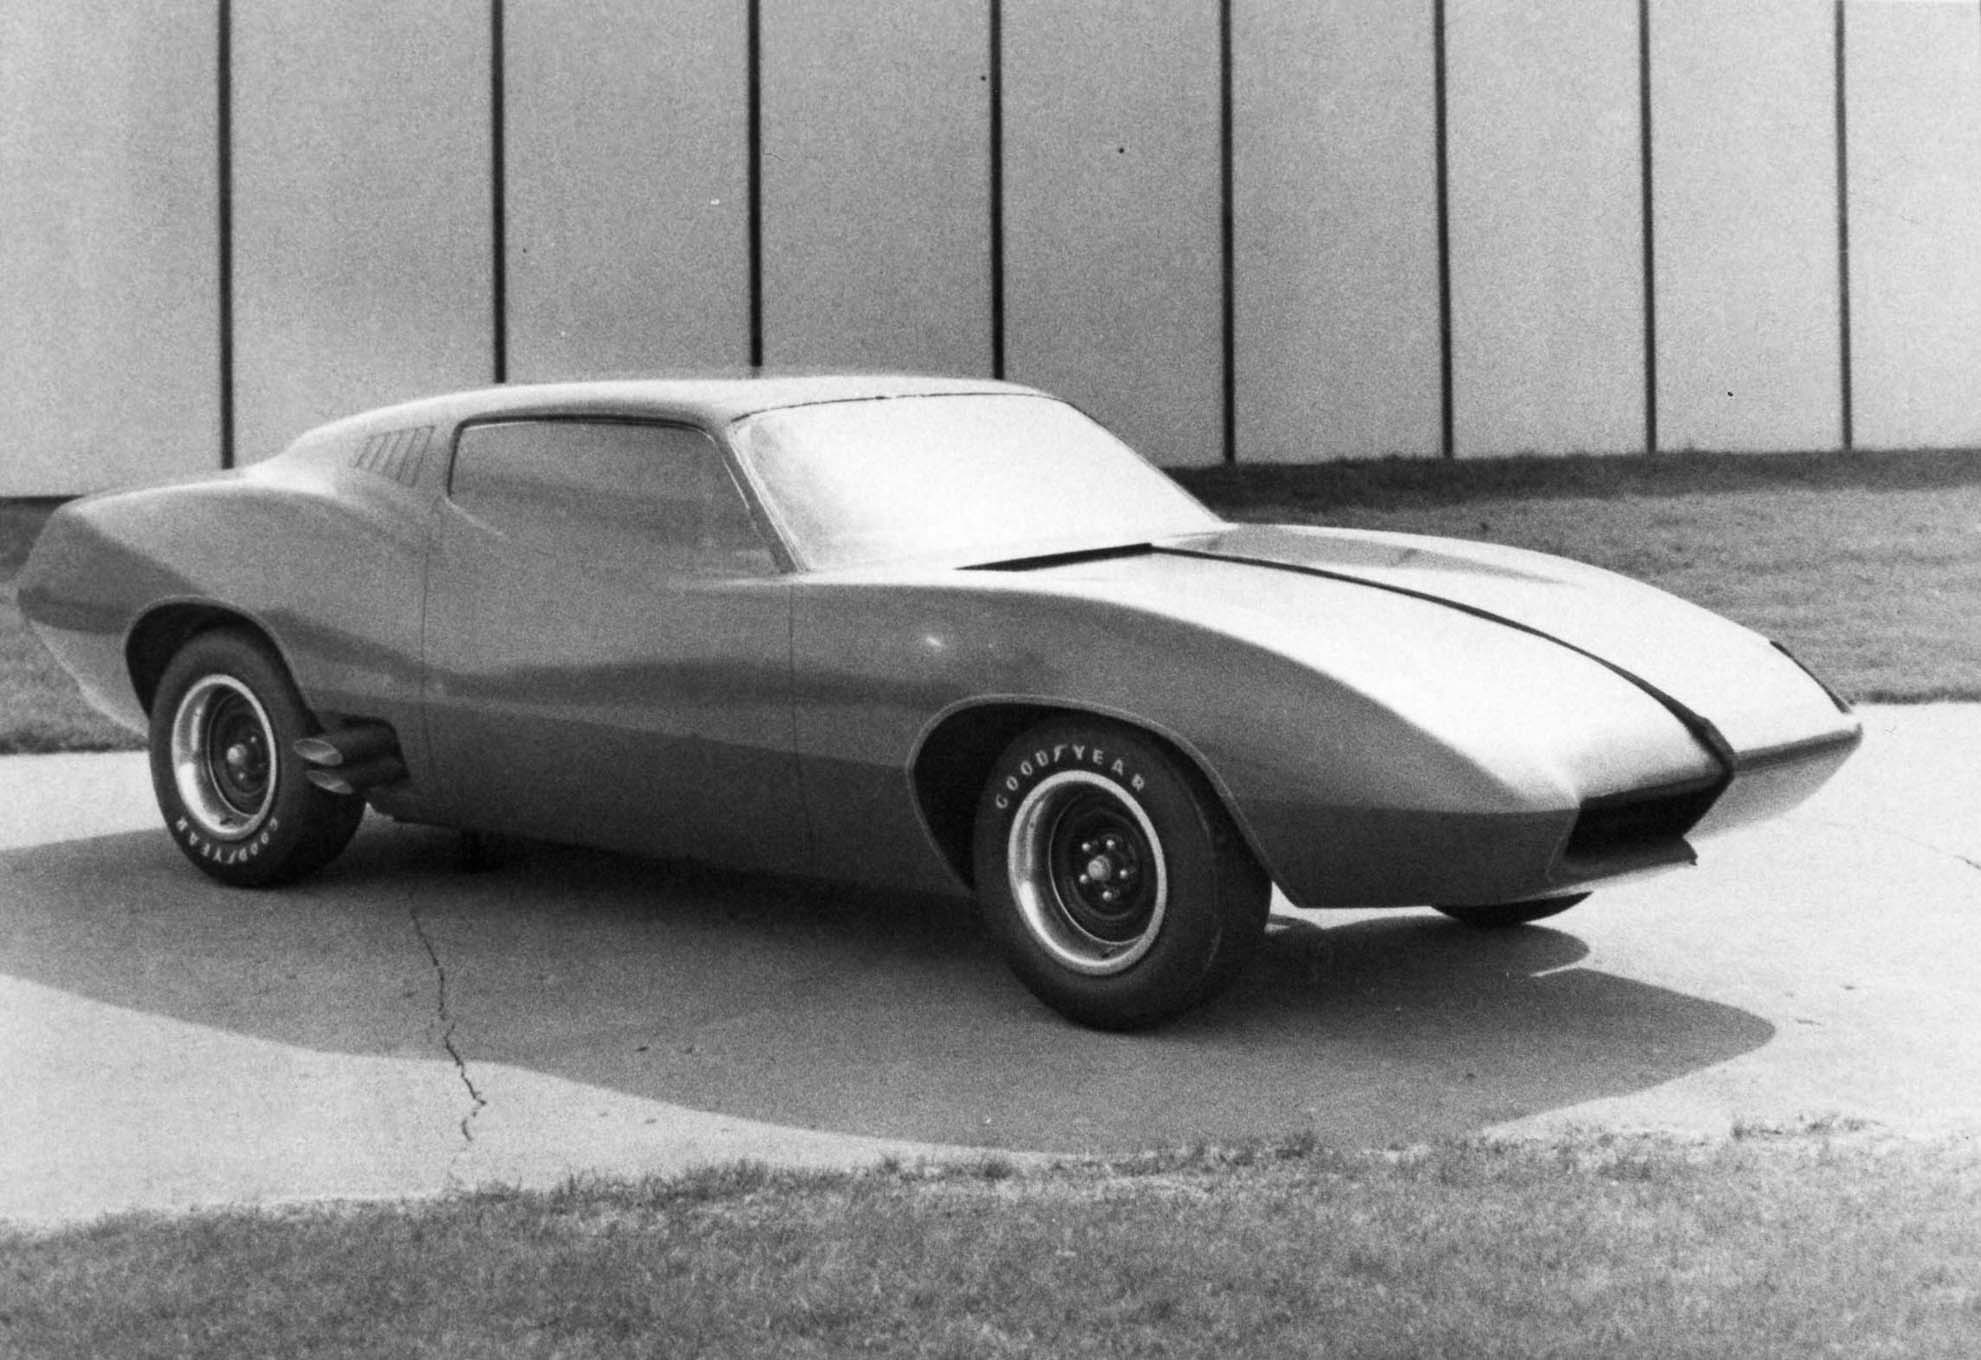 The Herlitz/Sampson clay, dated April 21, 1969, shows the fluid approach with extreme front overhang and aerodynamic nose. Hidden headlamps would have been incorporated into the front end. Notice the lack of a quarter window and exhaust tips incorporated into the rockers ahead of the rear wheel opening. The quarter panels ramped up and then dropped back down toward the rear backlight. The profile pulled down the green house and made the overall profile lower.